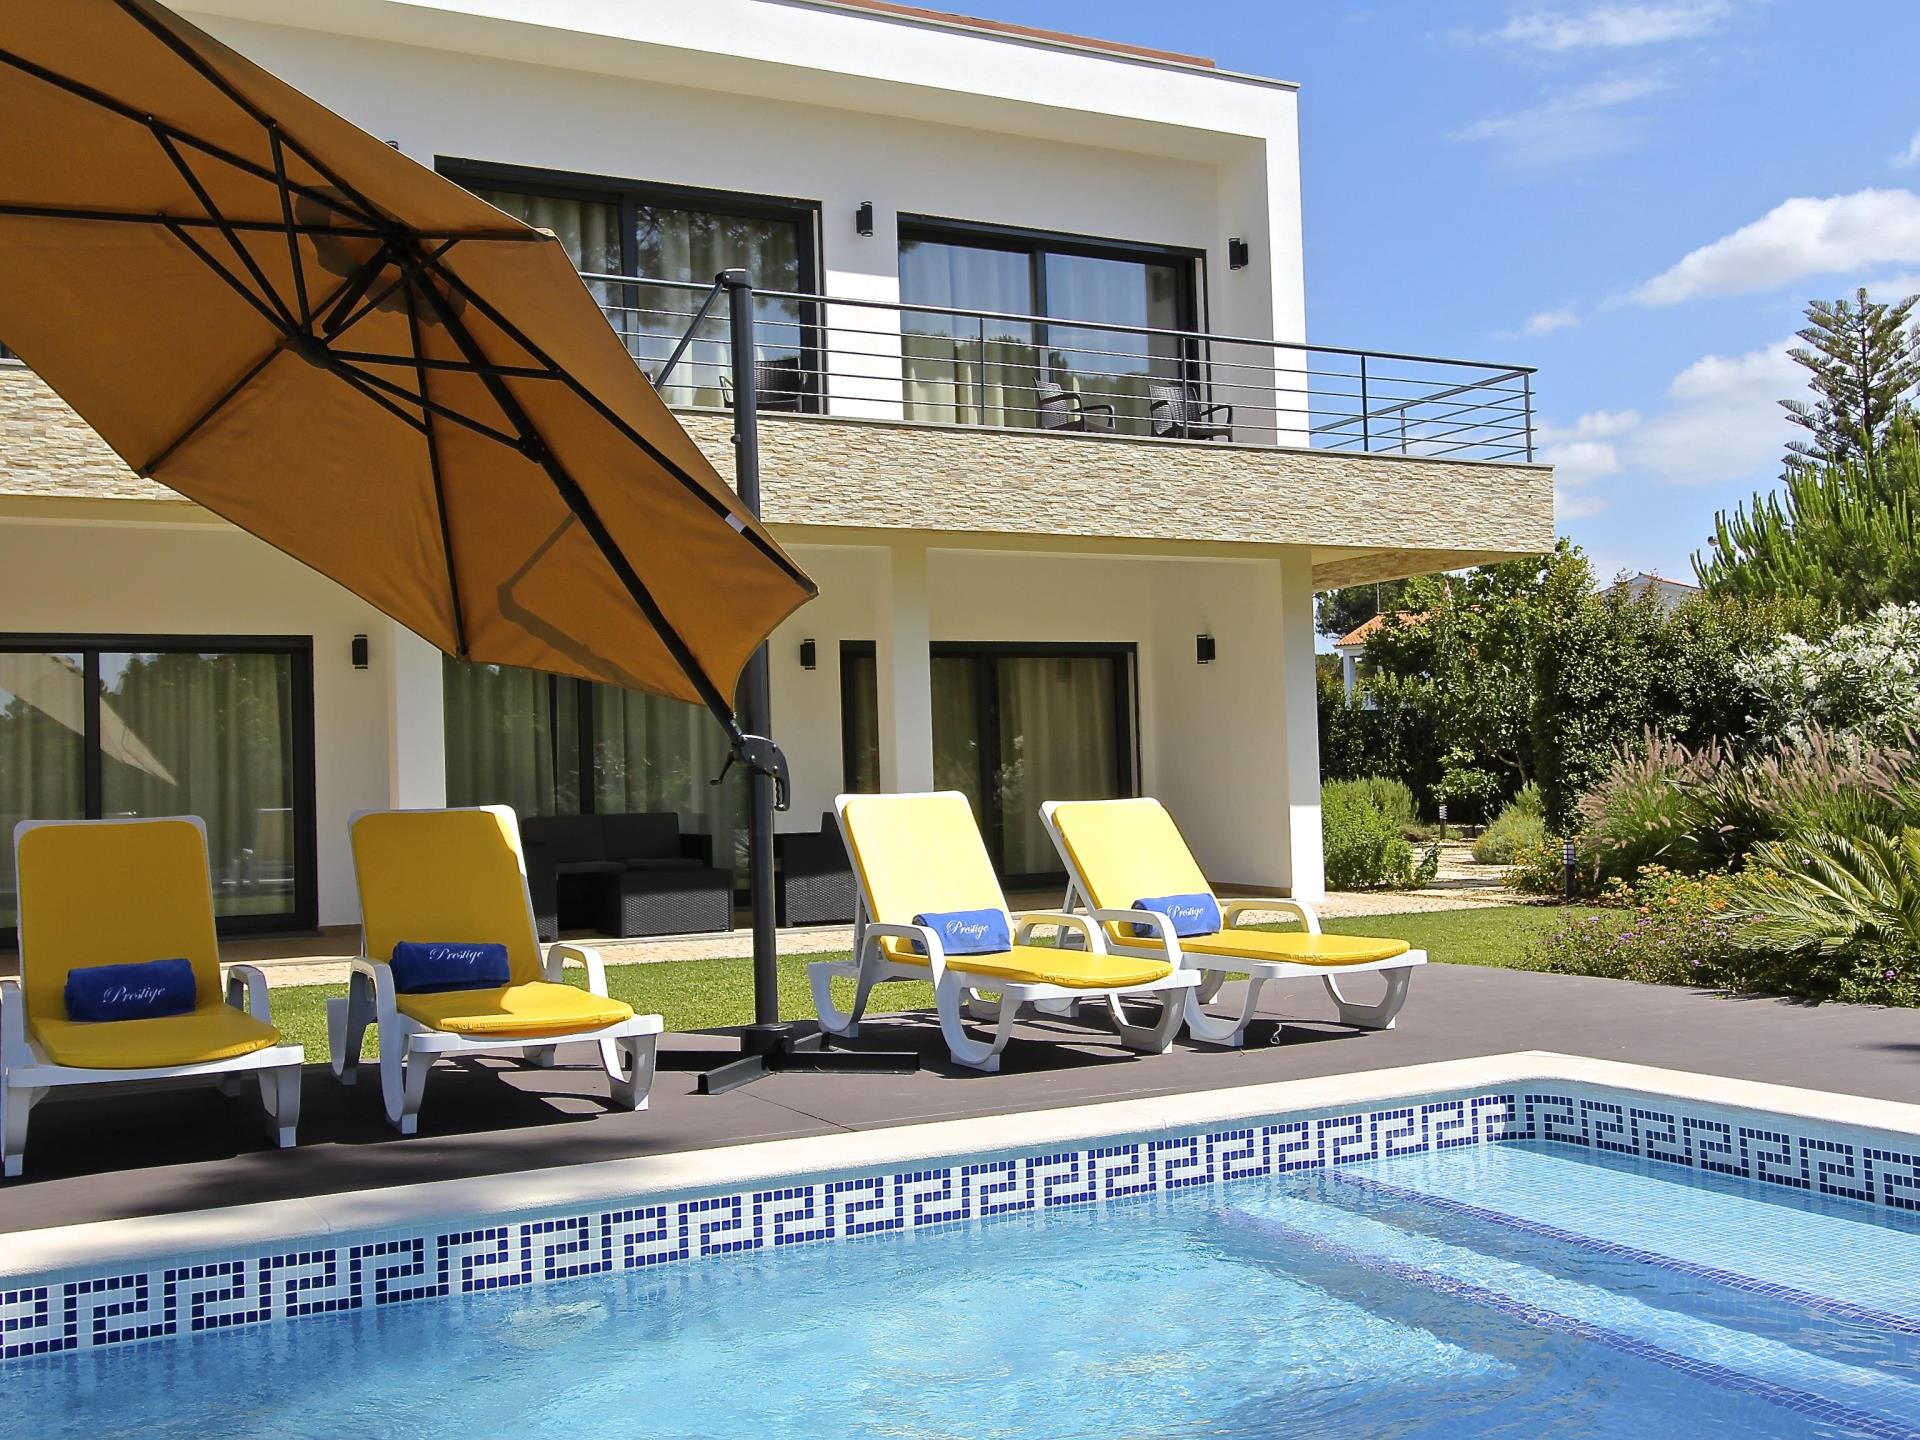 Casa Unifamiliar por un Venta en Detached house, 5 bedrooms, for Sale Loule, Algarve Portugal